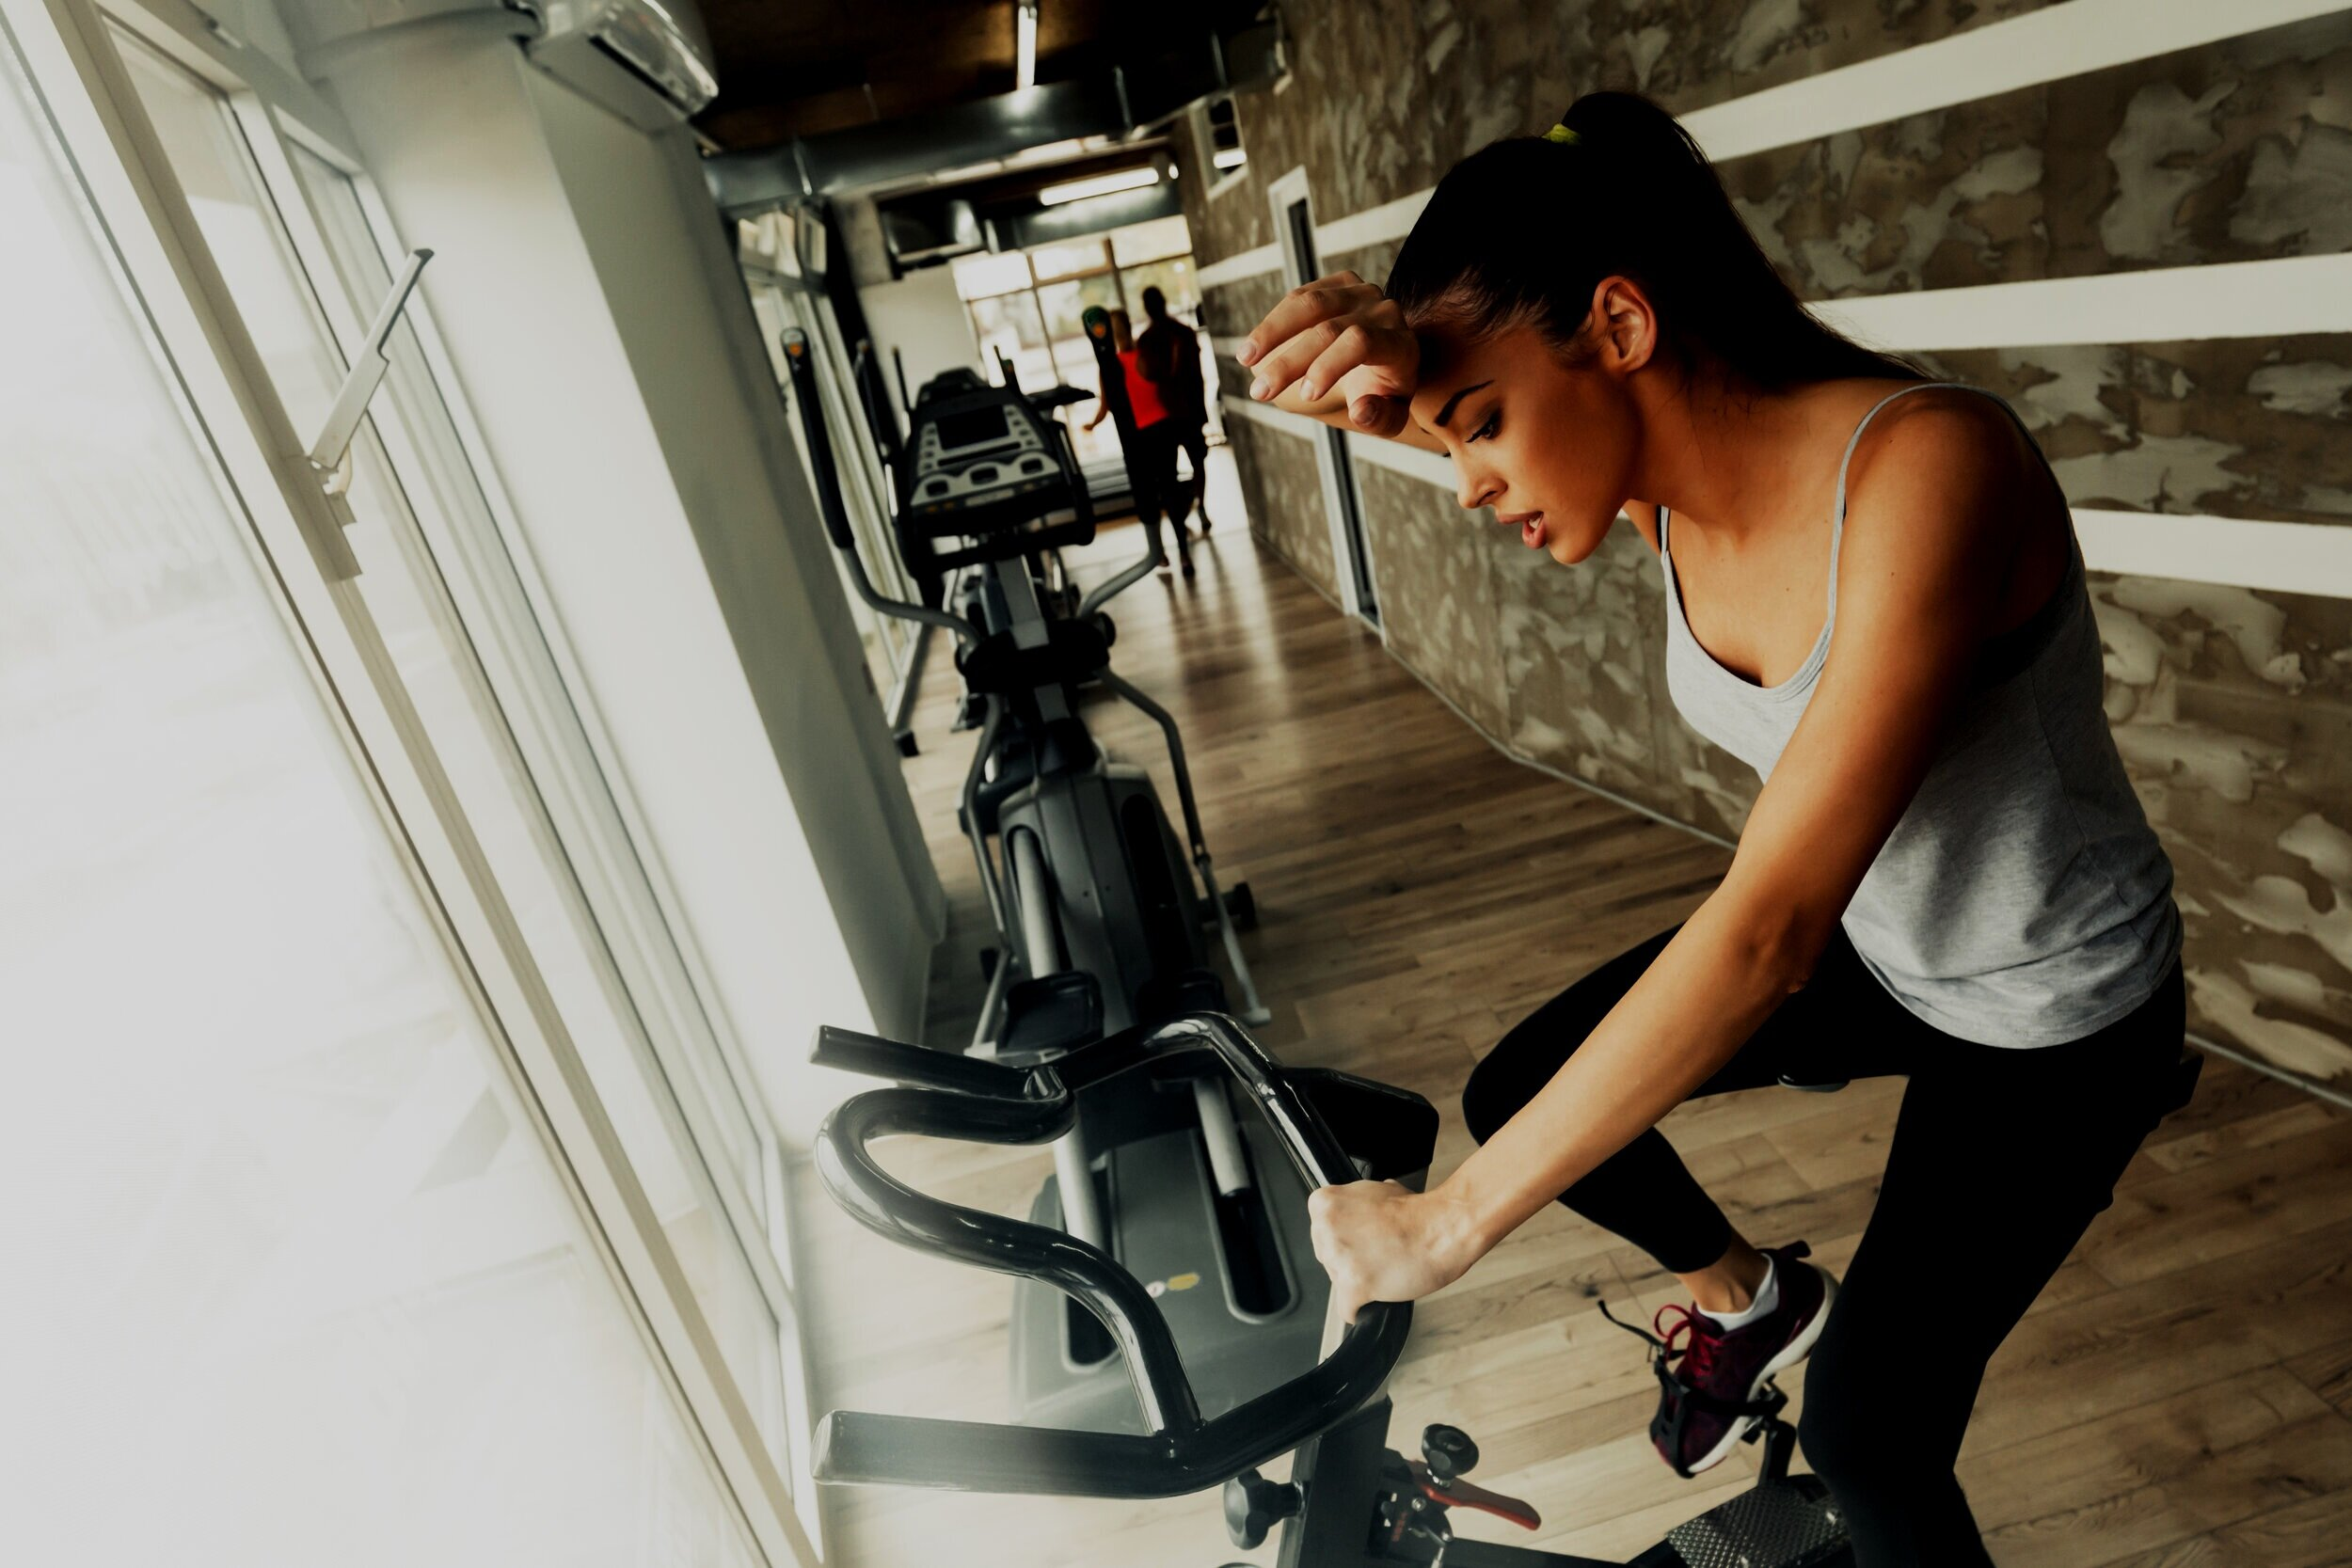 NO MORE CARDIO - Be done with cardio for once and for all!